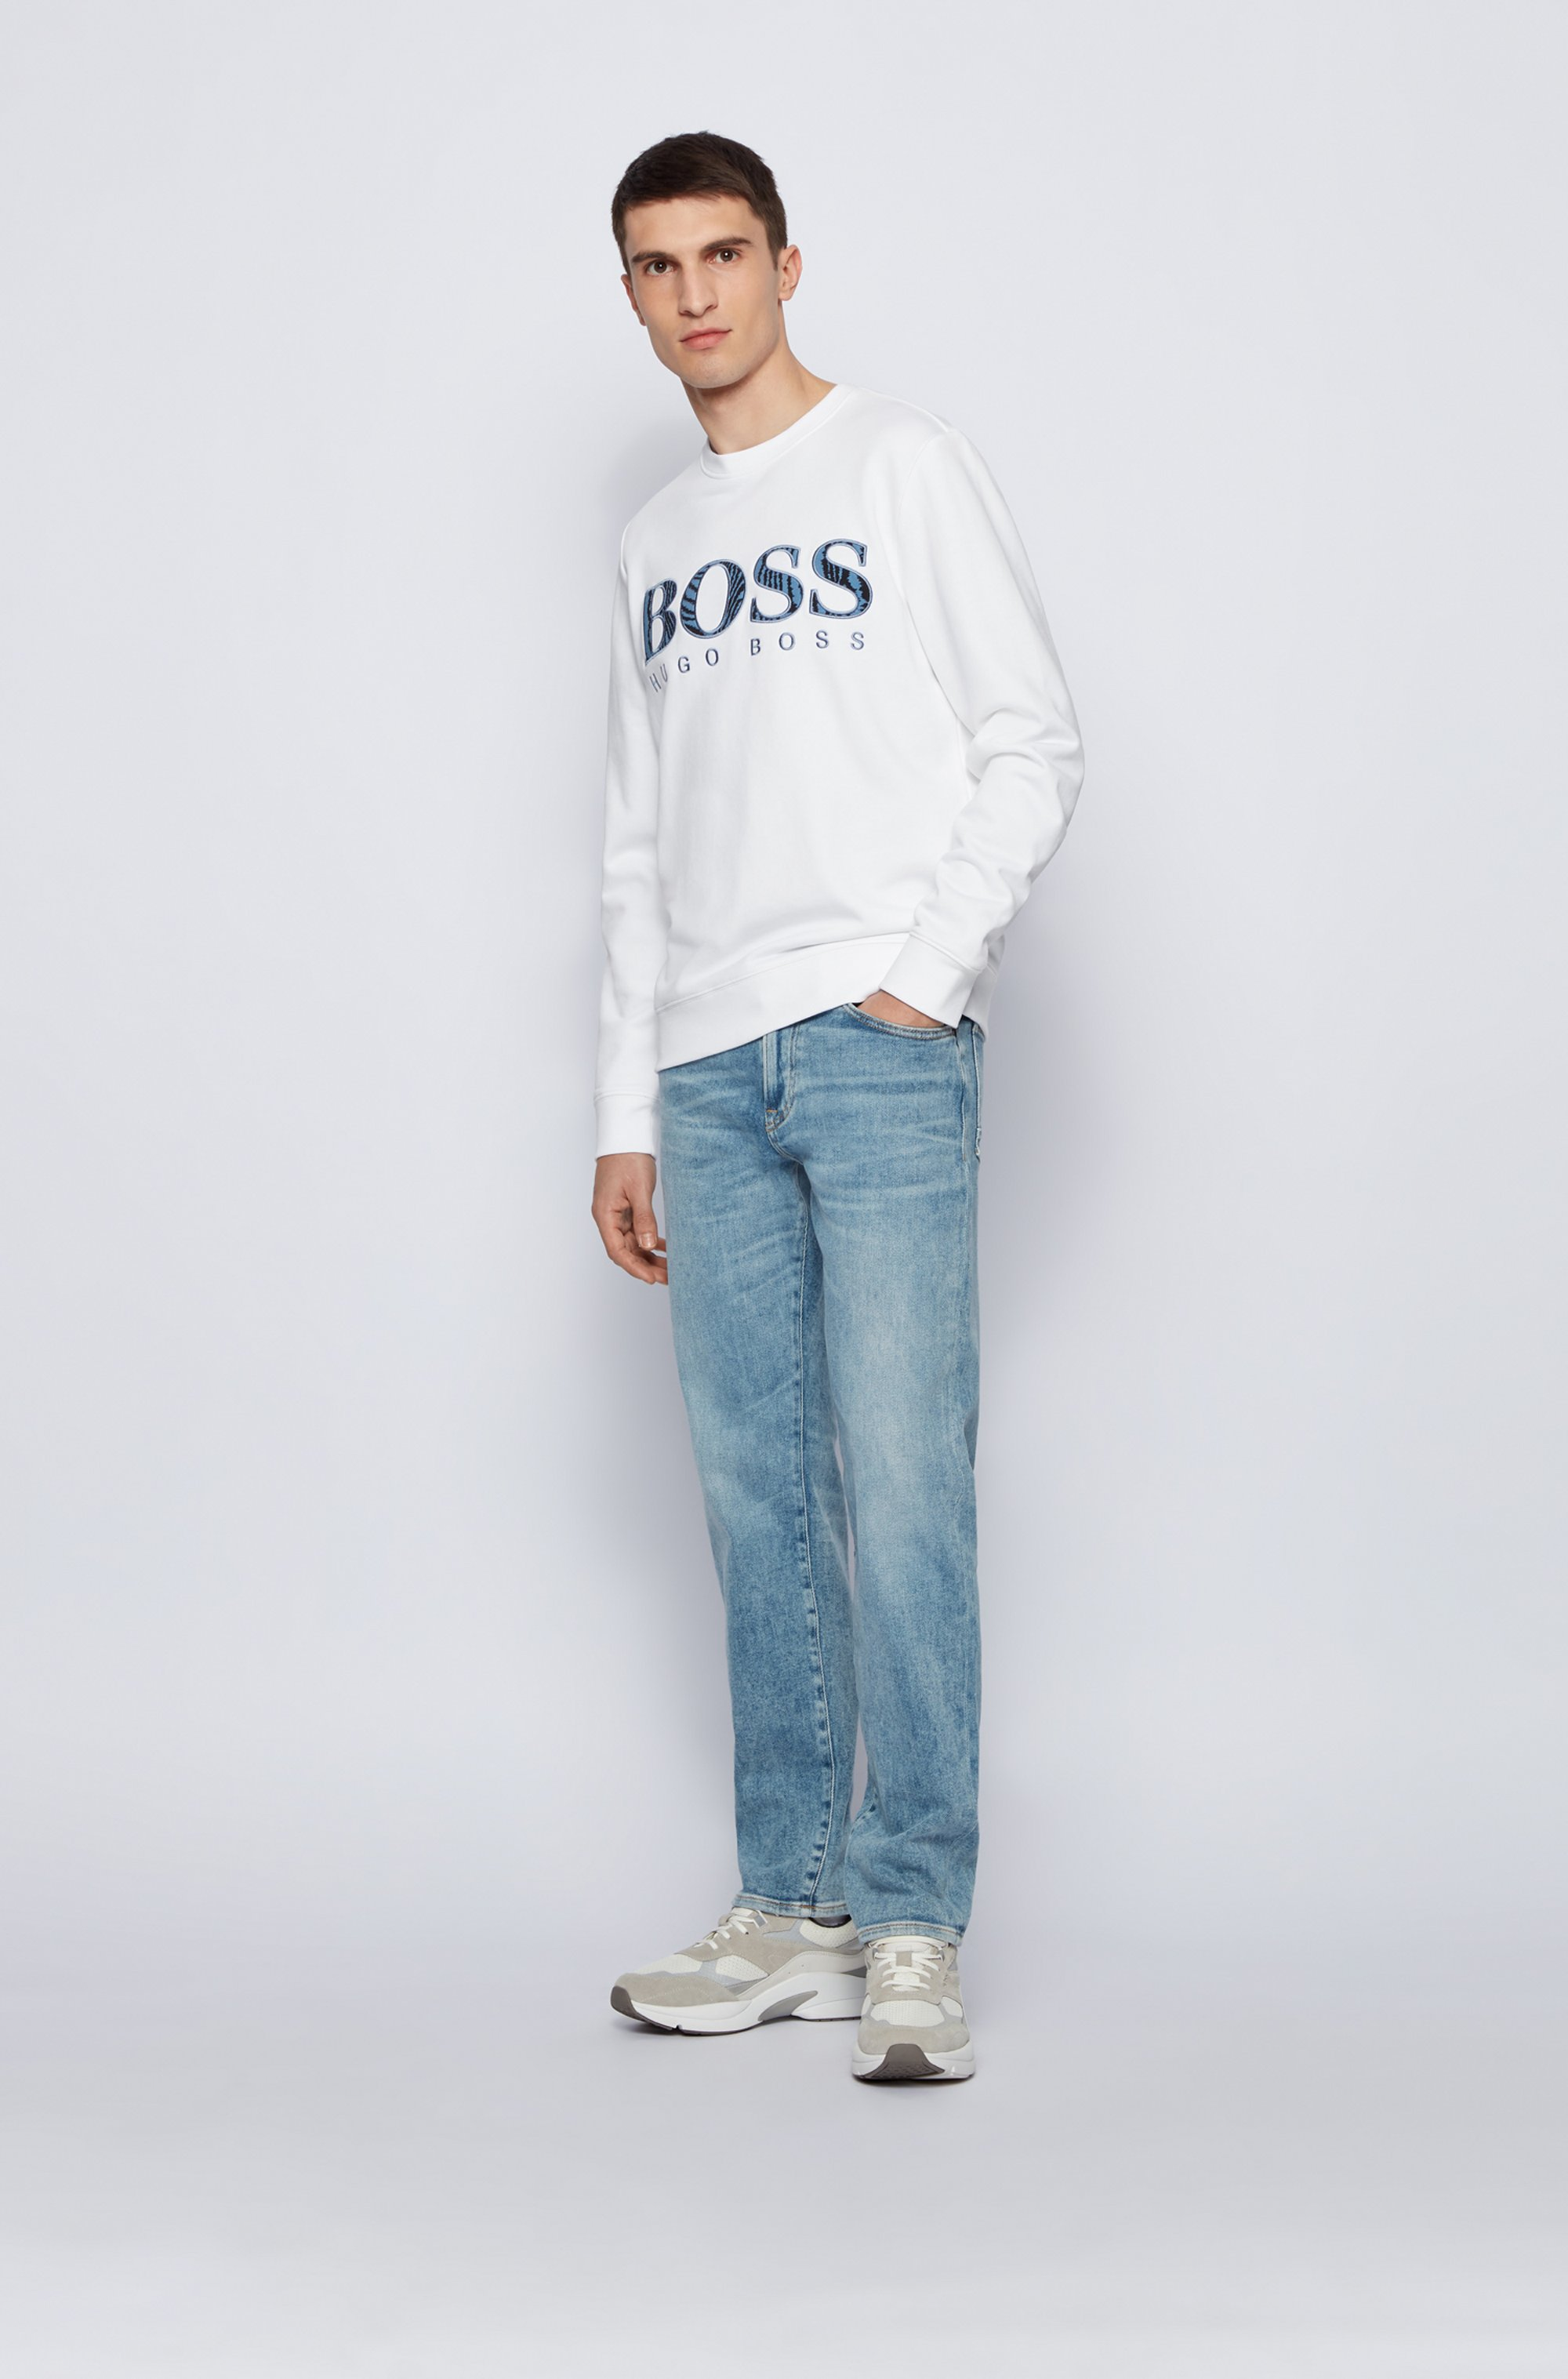 Relaxed-fit cotton sweatshirt with logo and embroidery